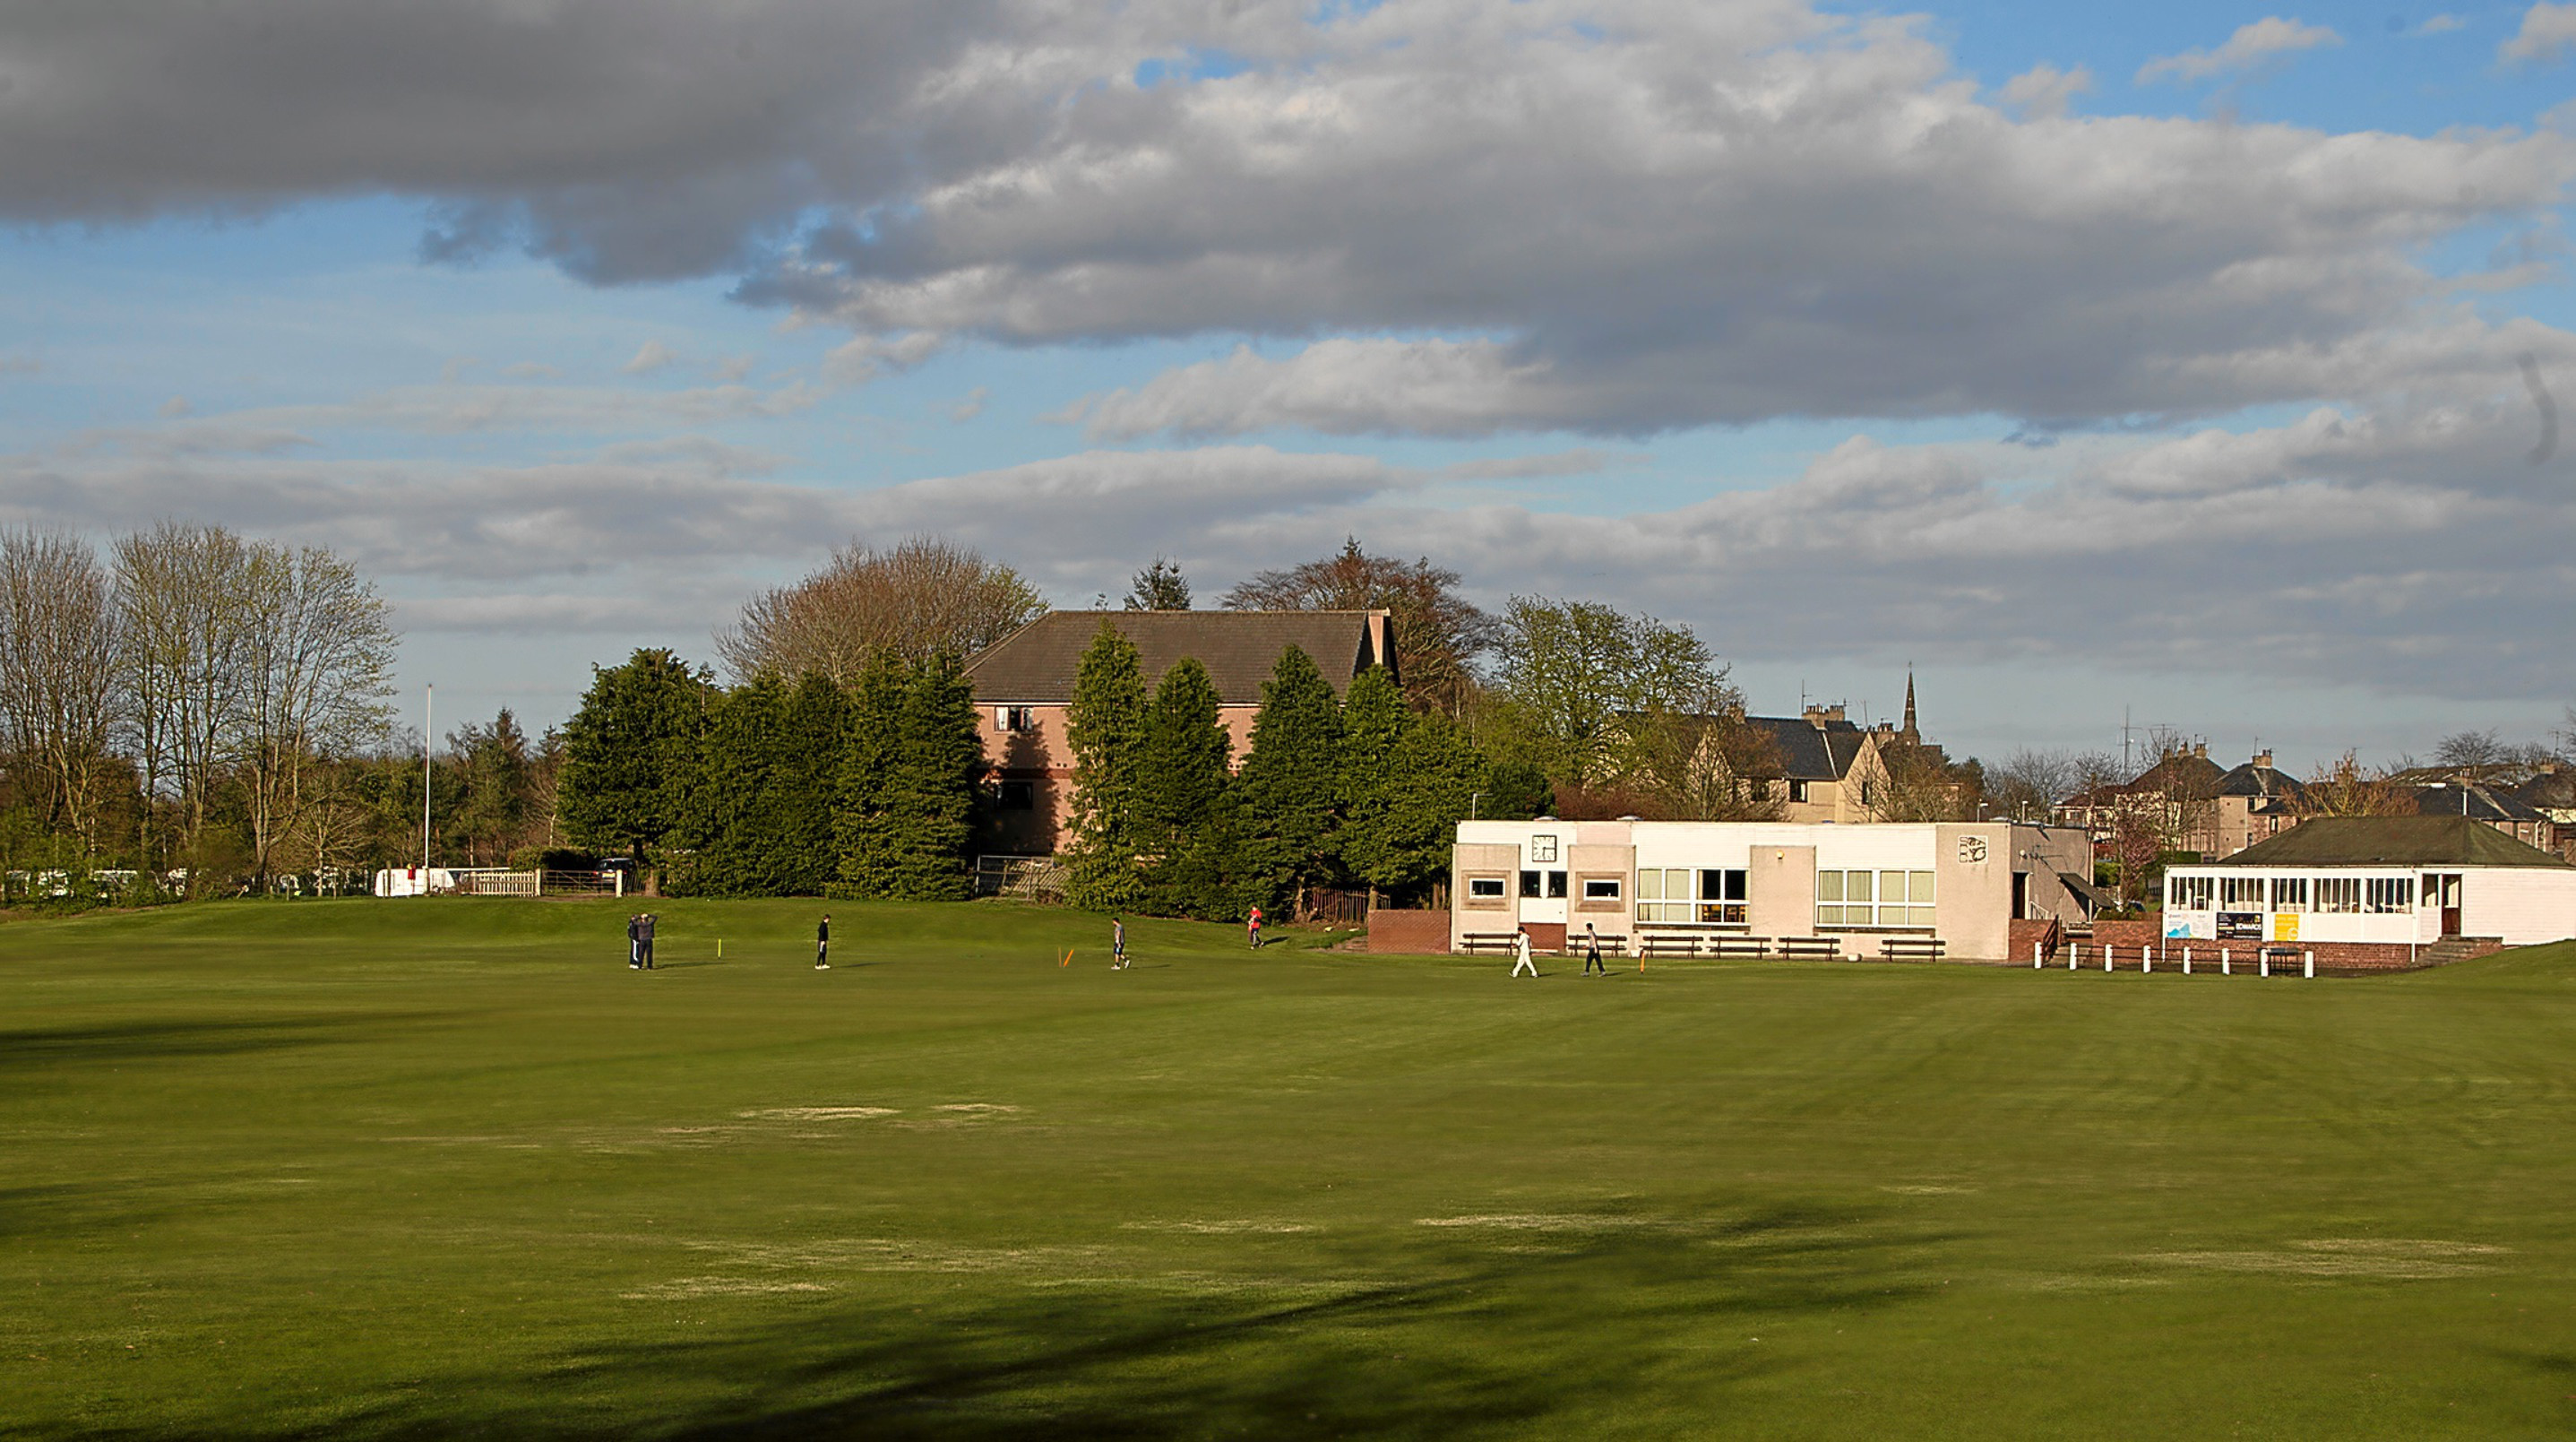 Strathmore cricketers at the crease.